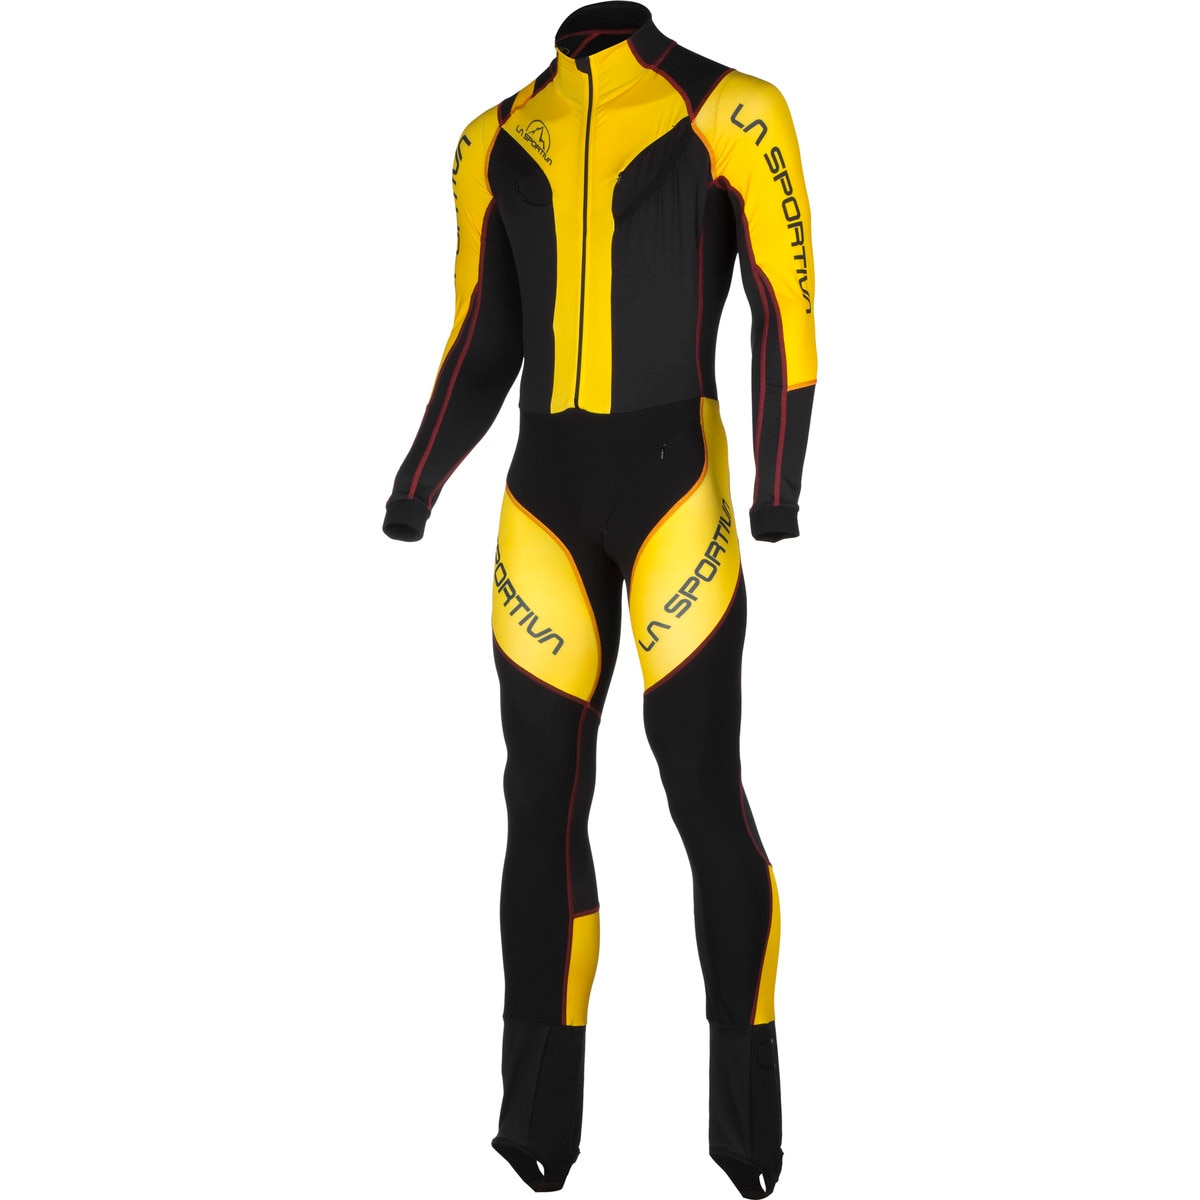 photo: La Sportiva Syborg Racing Suit